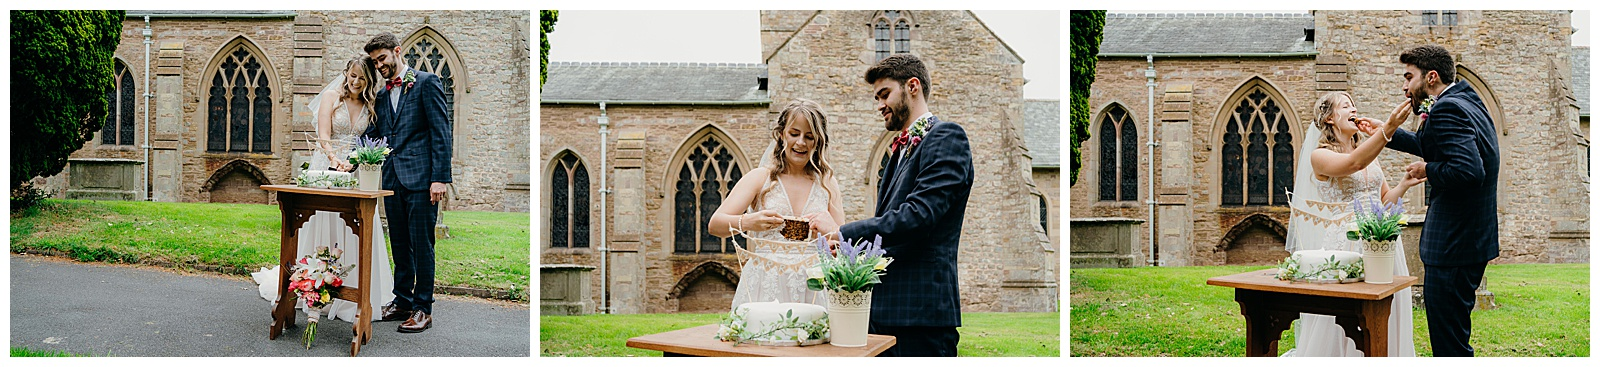 bride and groom cut the wedding cake in the grounds of the church